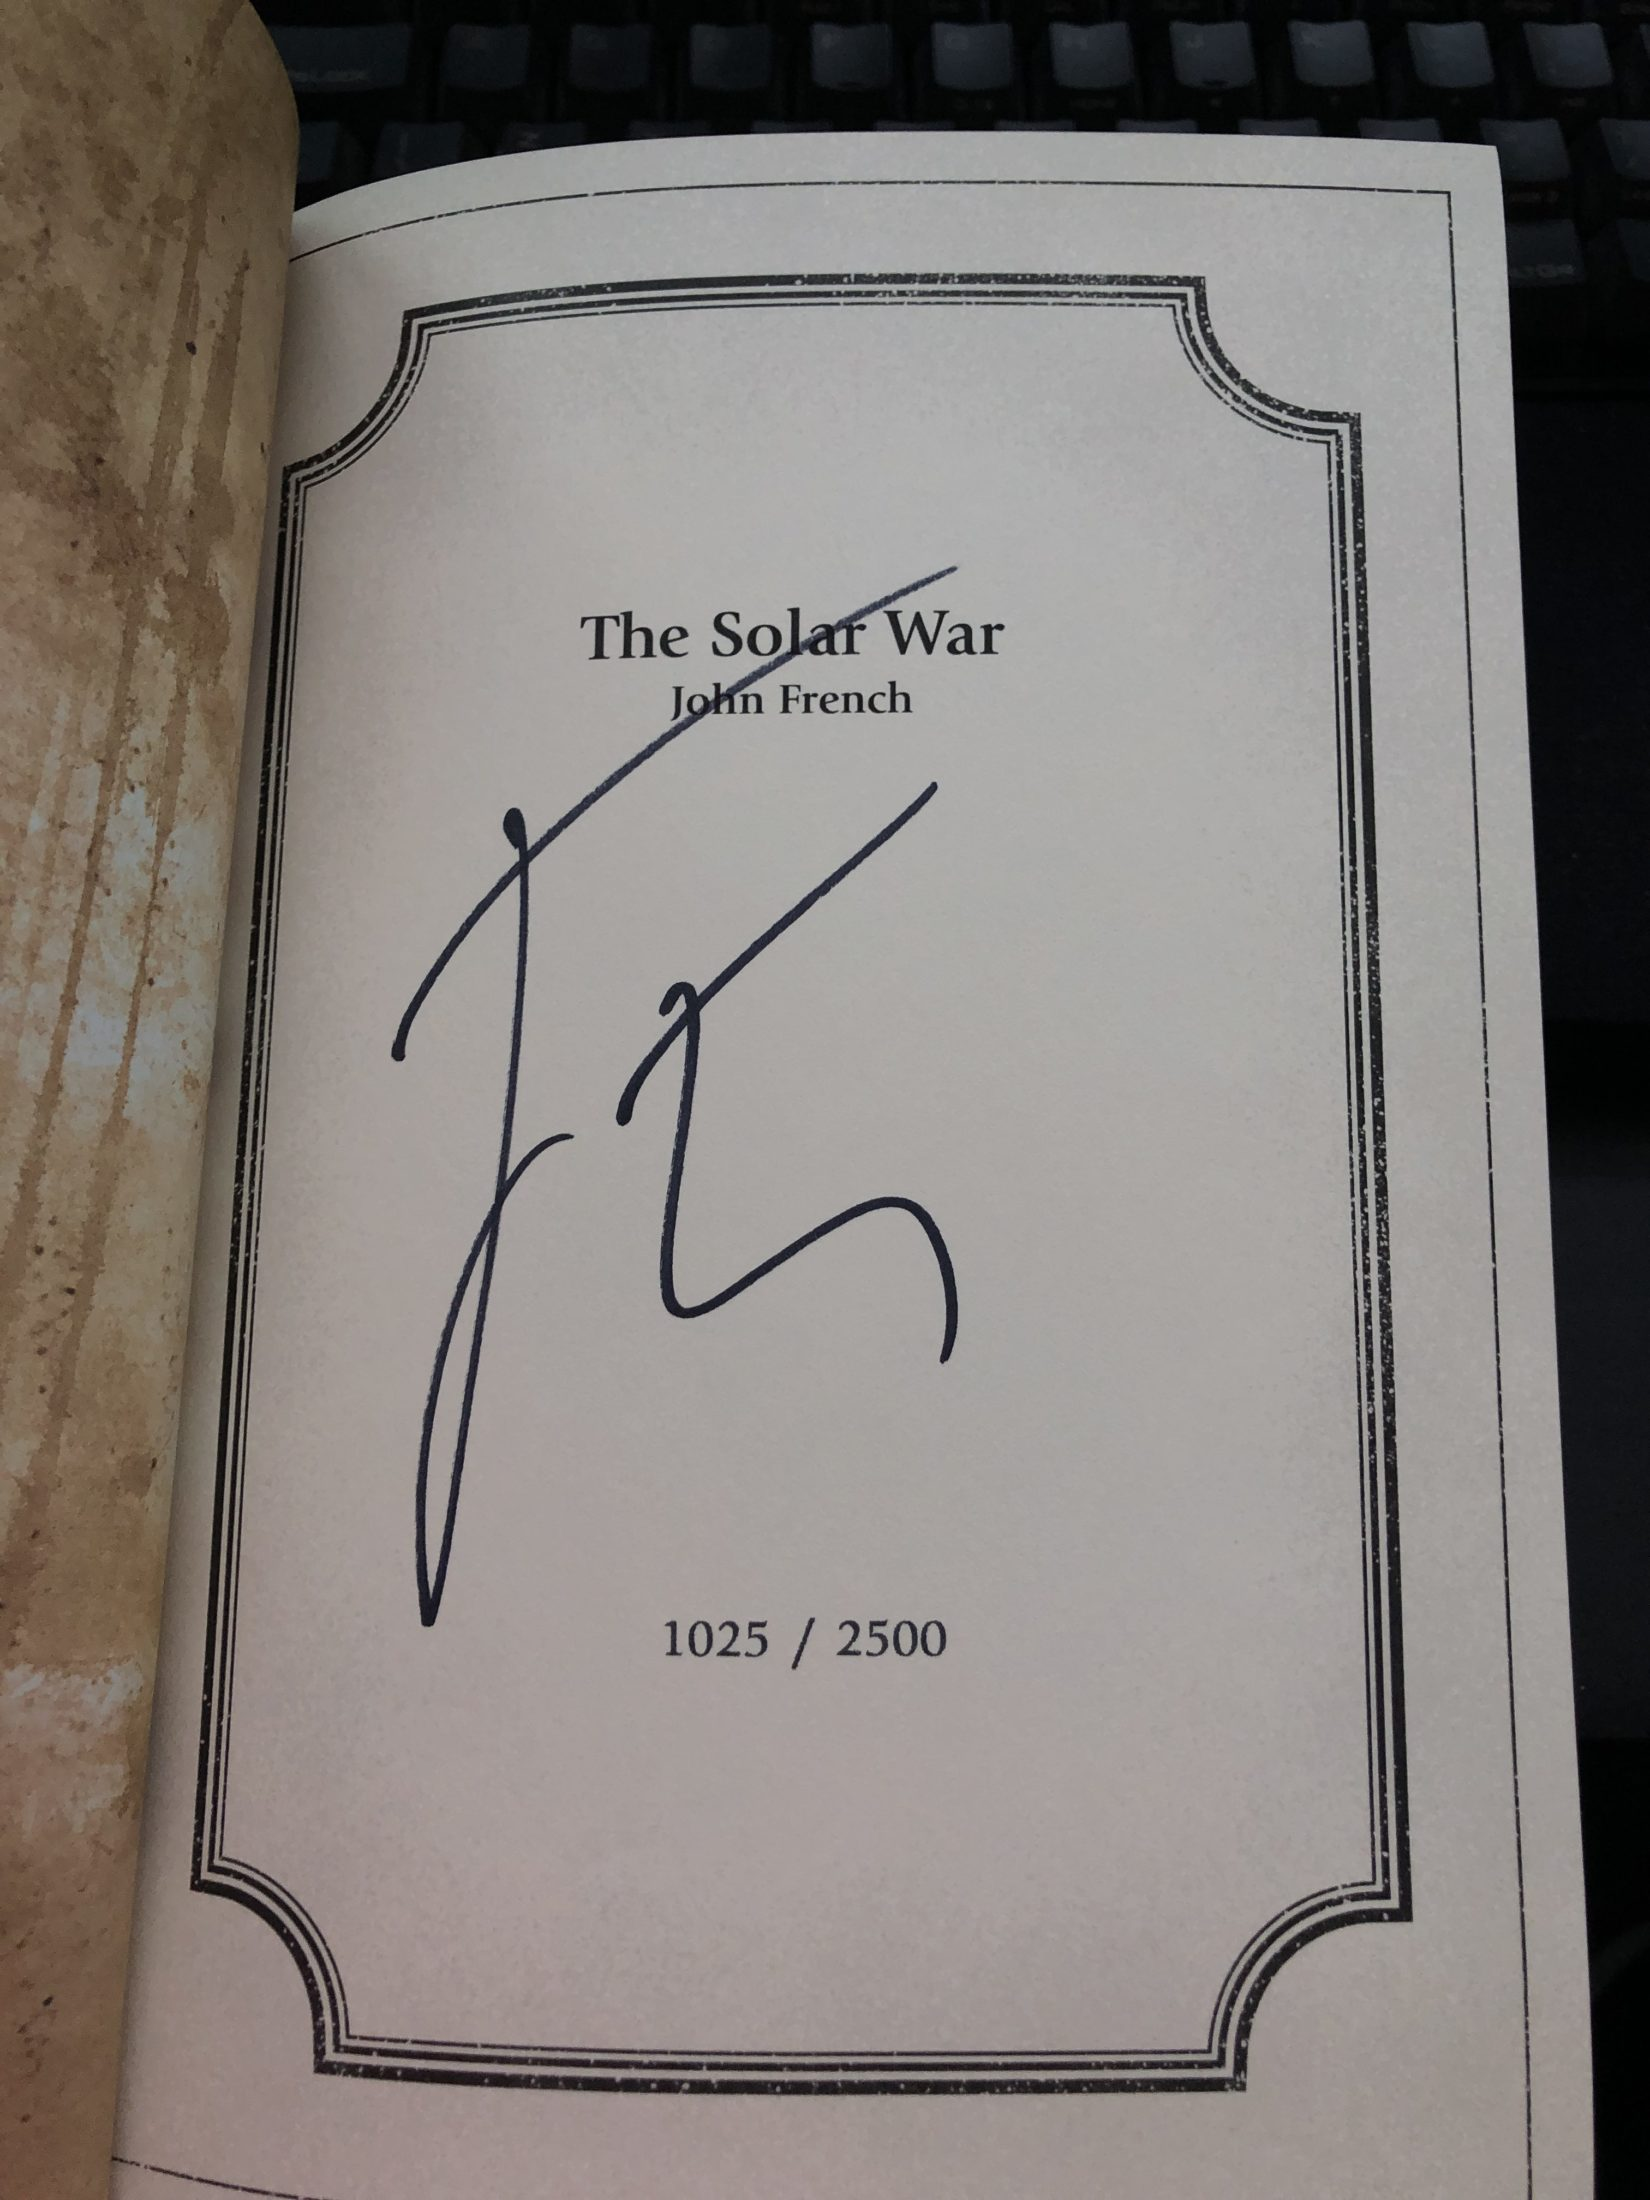 The Solar War limited editino numberinng and author's signature